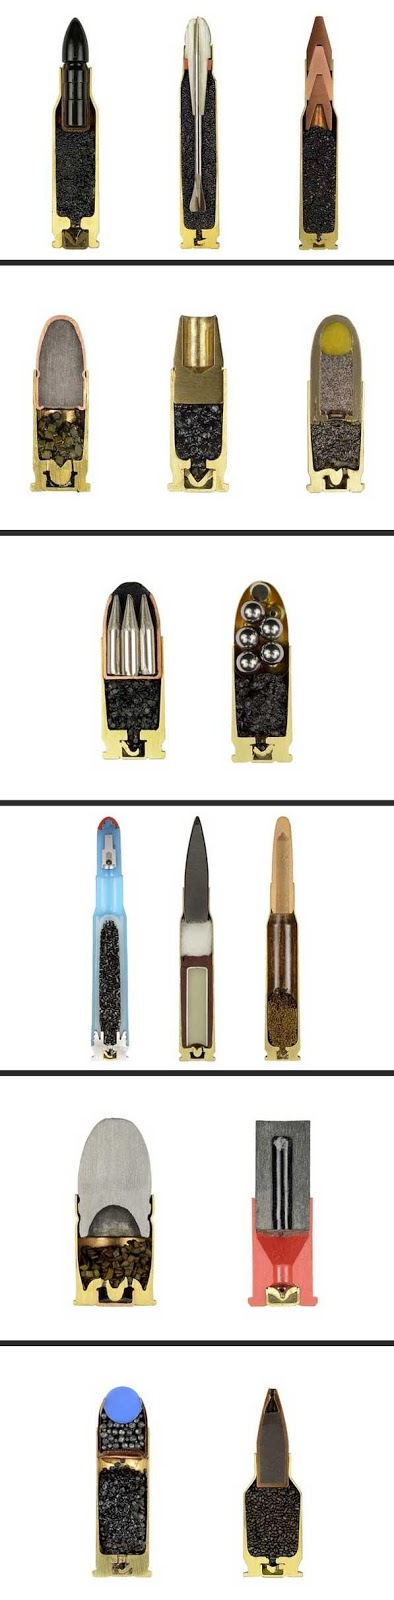 Cutaway Views of Various Ammunition Cartridges